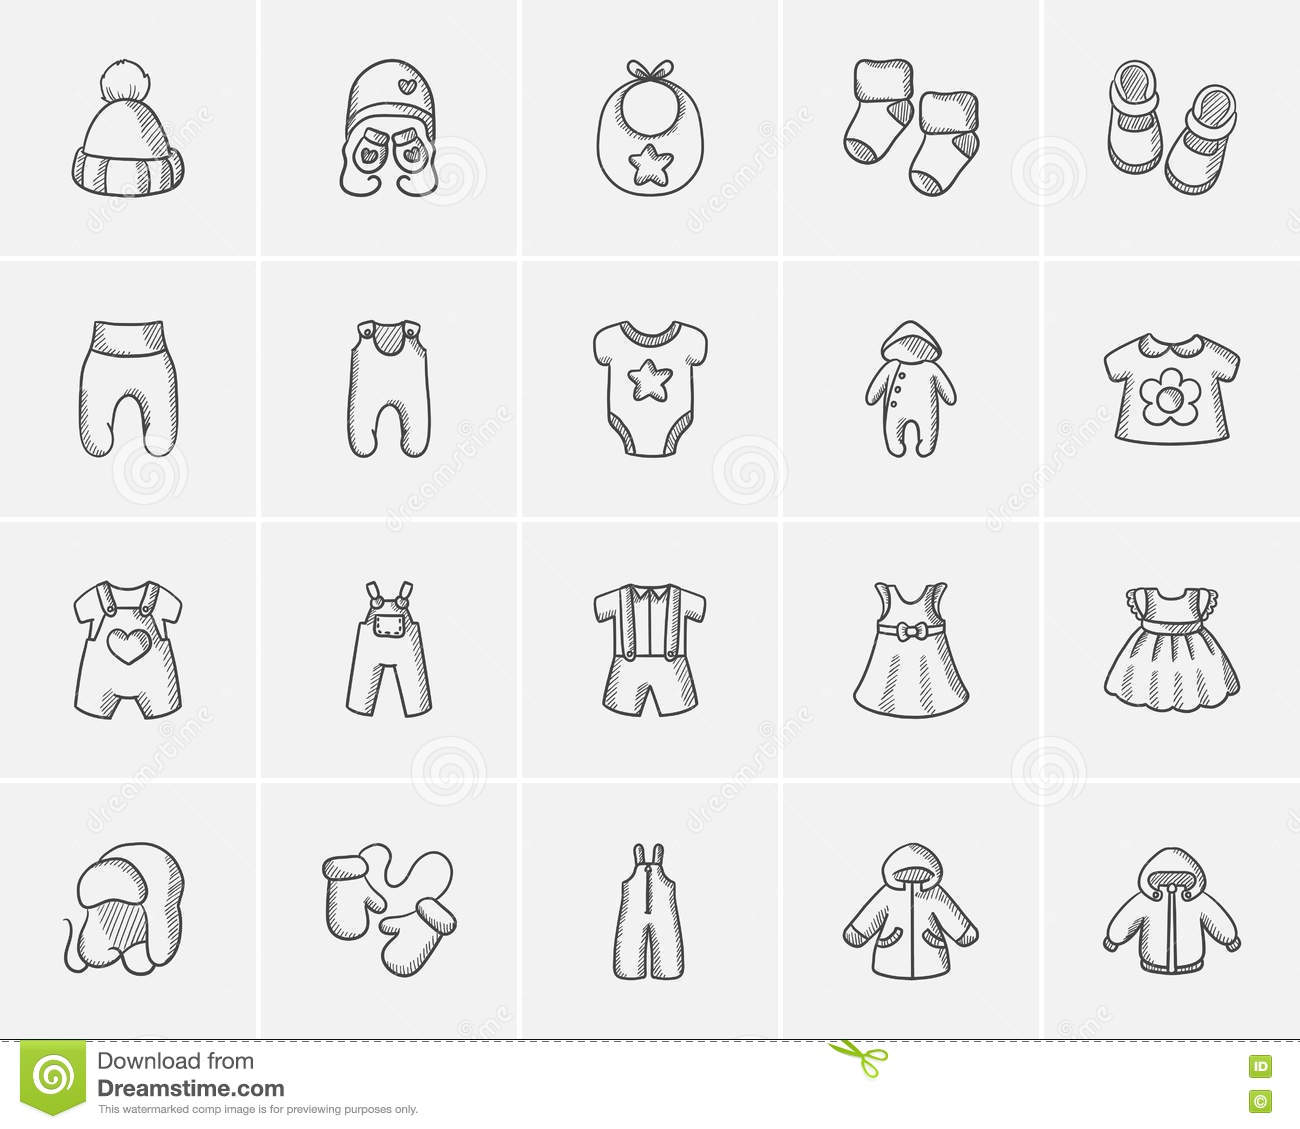 f6366549d7c6 Baby Clothes Sketch Icon Set. Stock Vector - Illustration of child ...